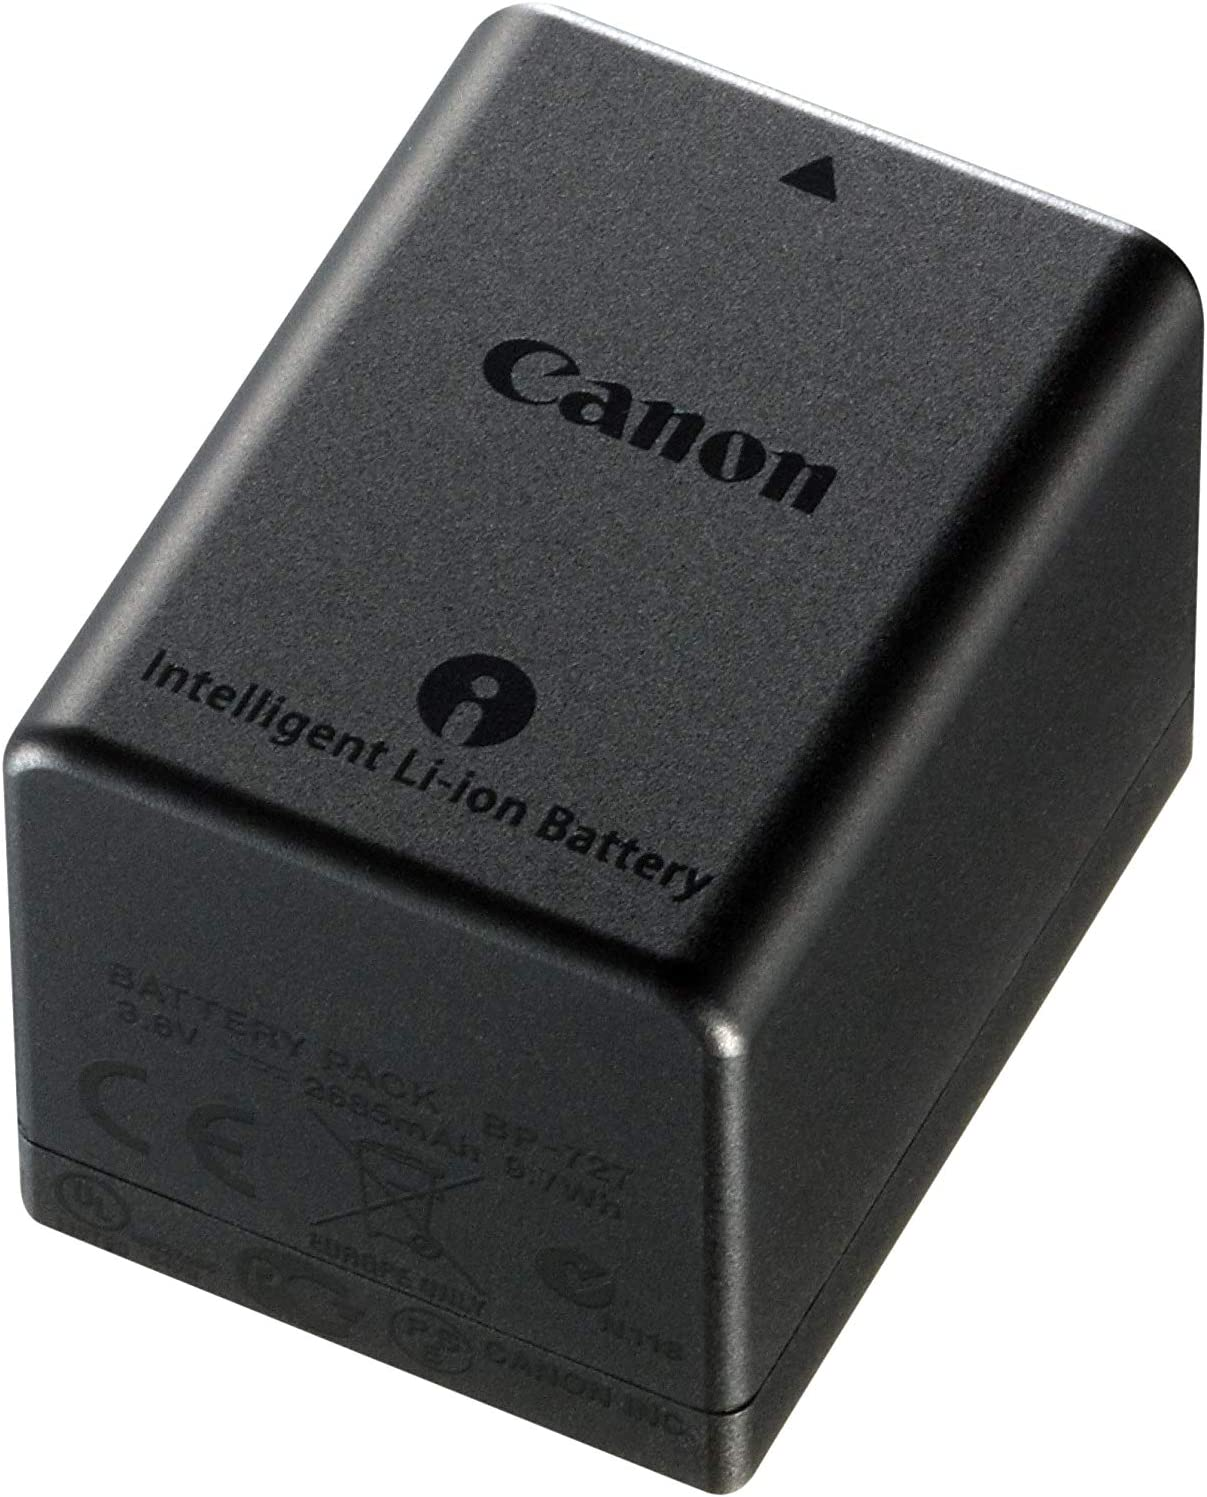 Canon Bp 727 Battery For Camcorder Camera Photo